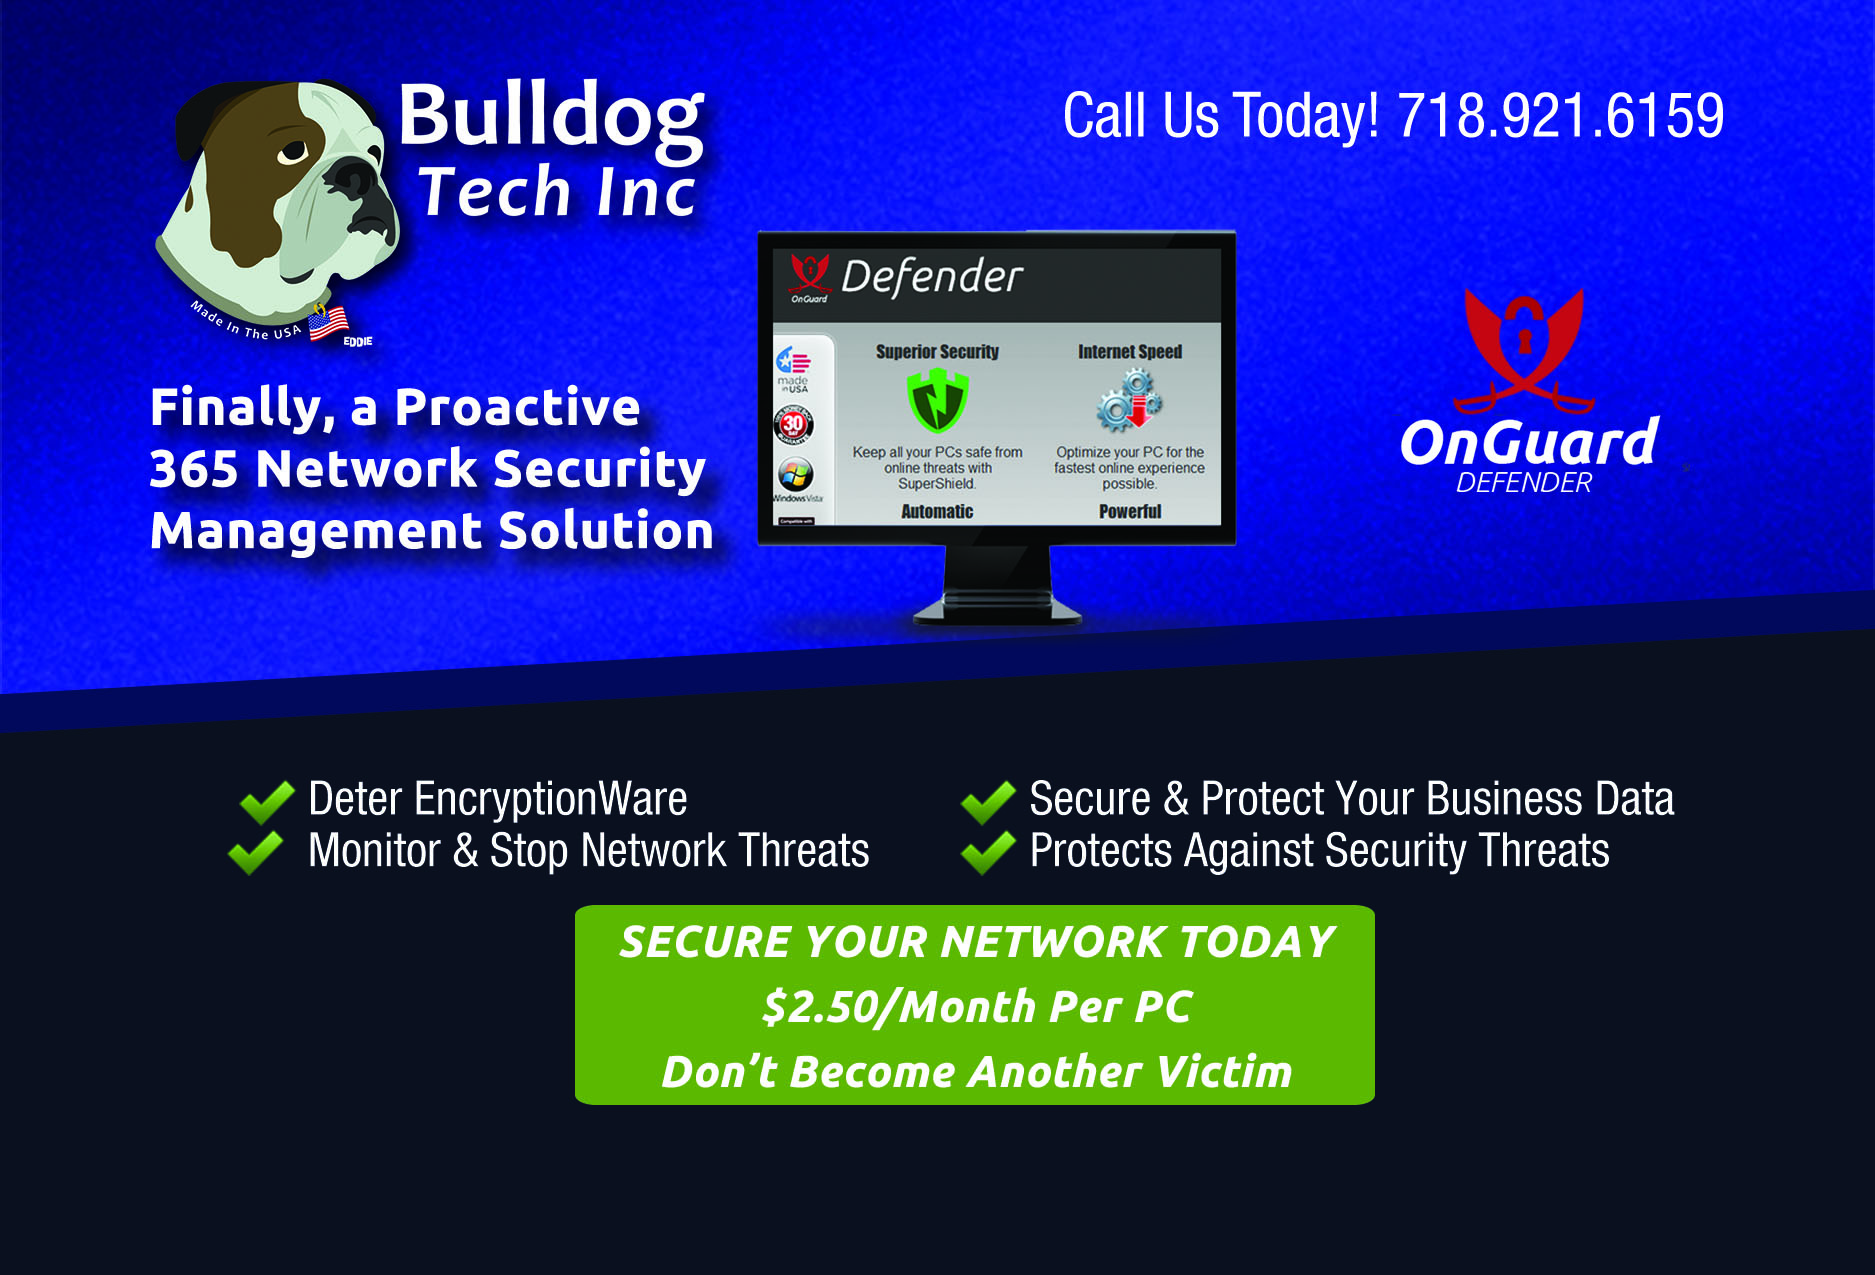 bulldog tech offers onguard defender